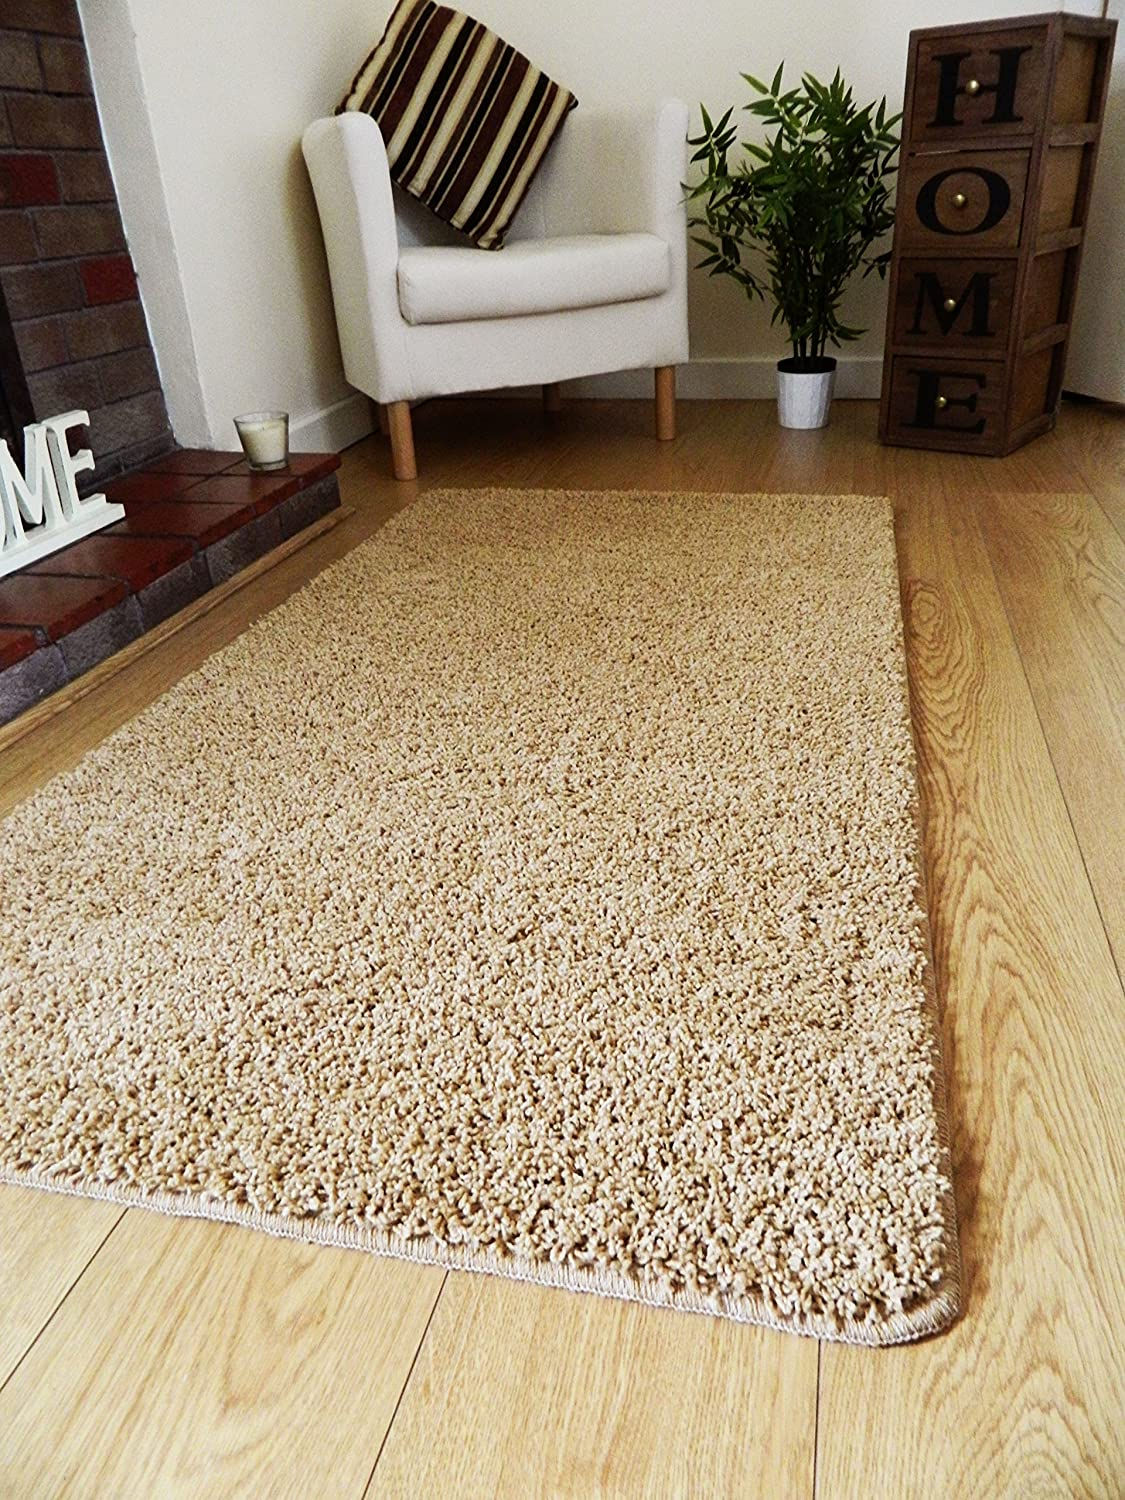 NEW BISCUIT GOLD SHAGGY MATS MACHINE WASHABLE NON SLIP LARGE SMALL BEDROOM  RUGS (66 X 120 CM): Amazon.co.uk: Kitchen U0026 Home